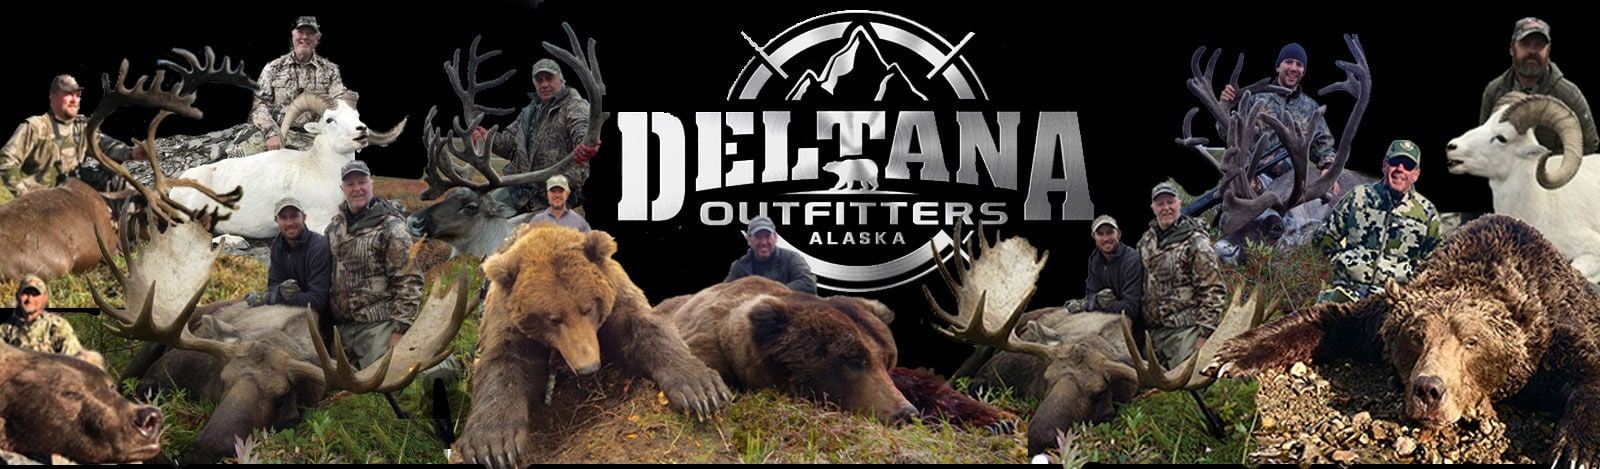 Deltana Alaska Hunts for Bear, Moose, Sheep and Caribou a Website